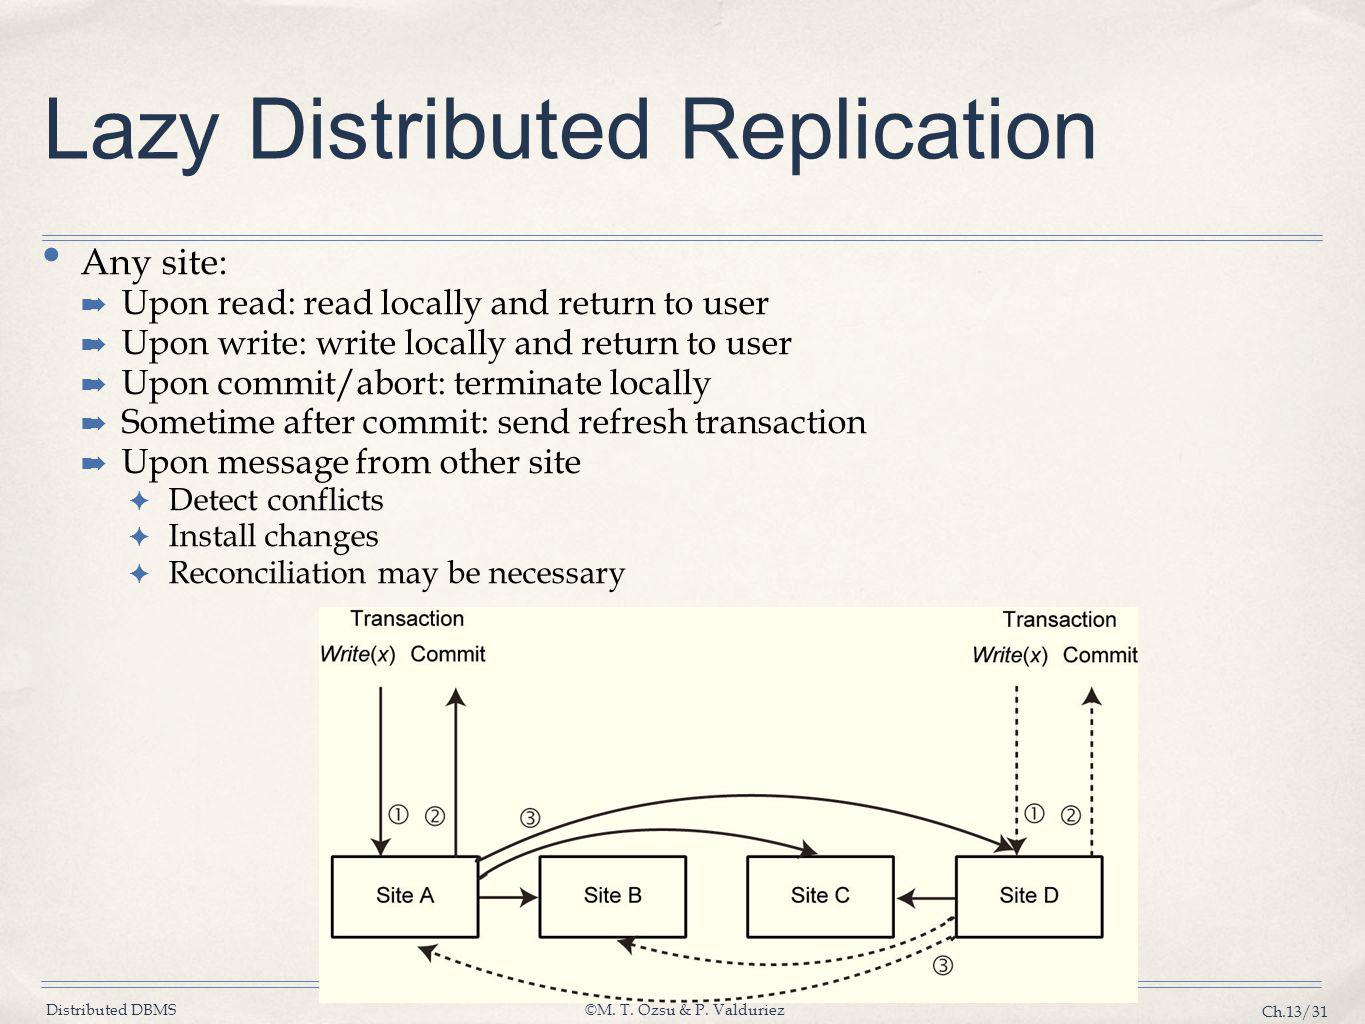 Lazy Distributed Replication